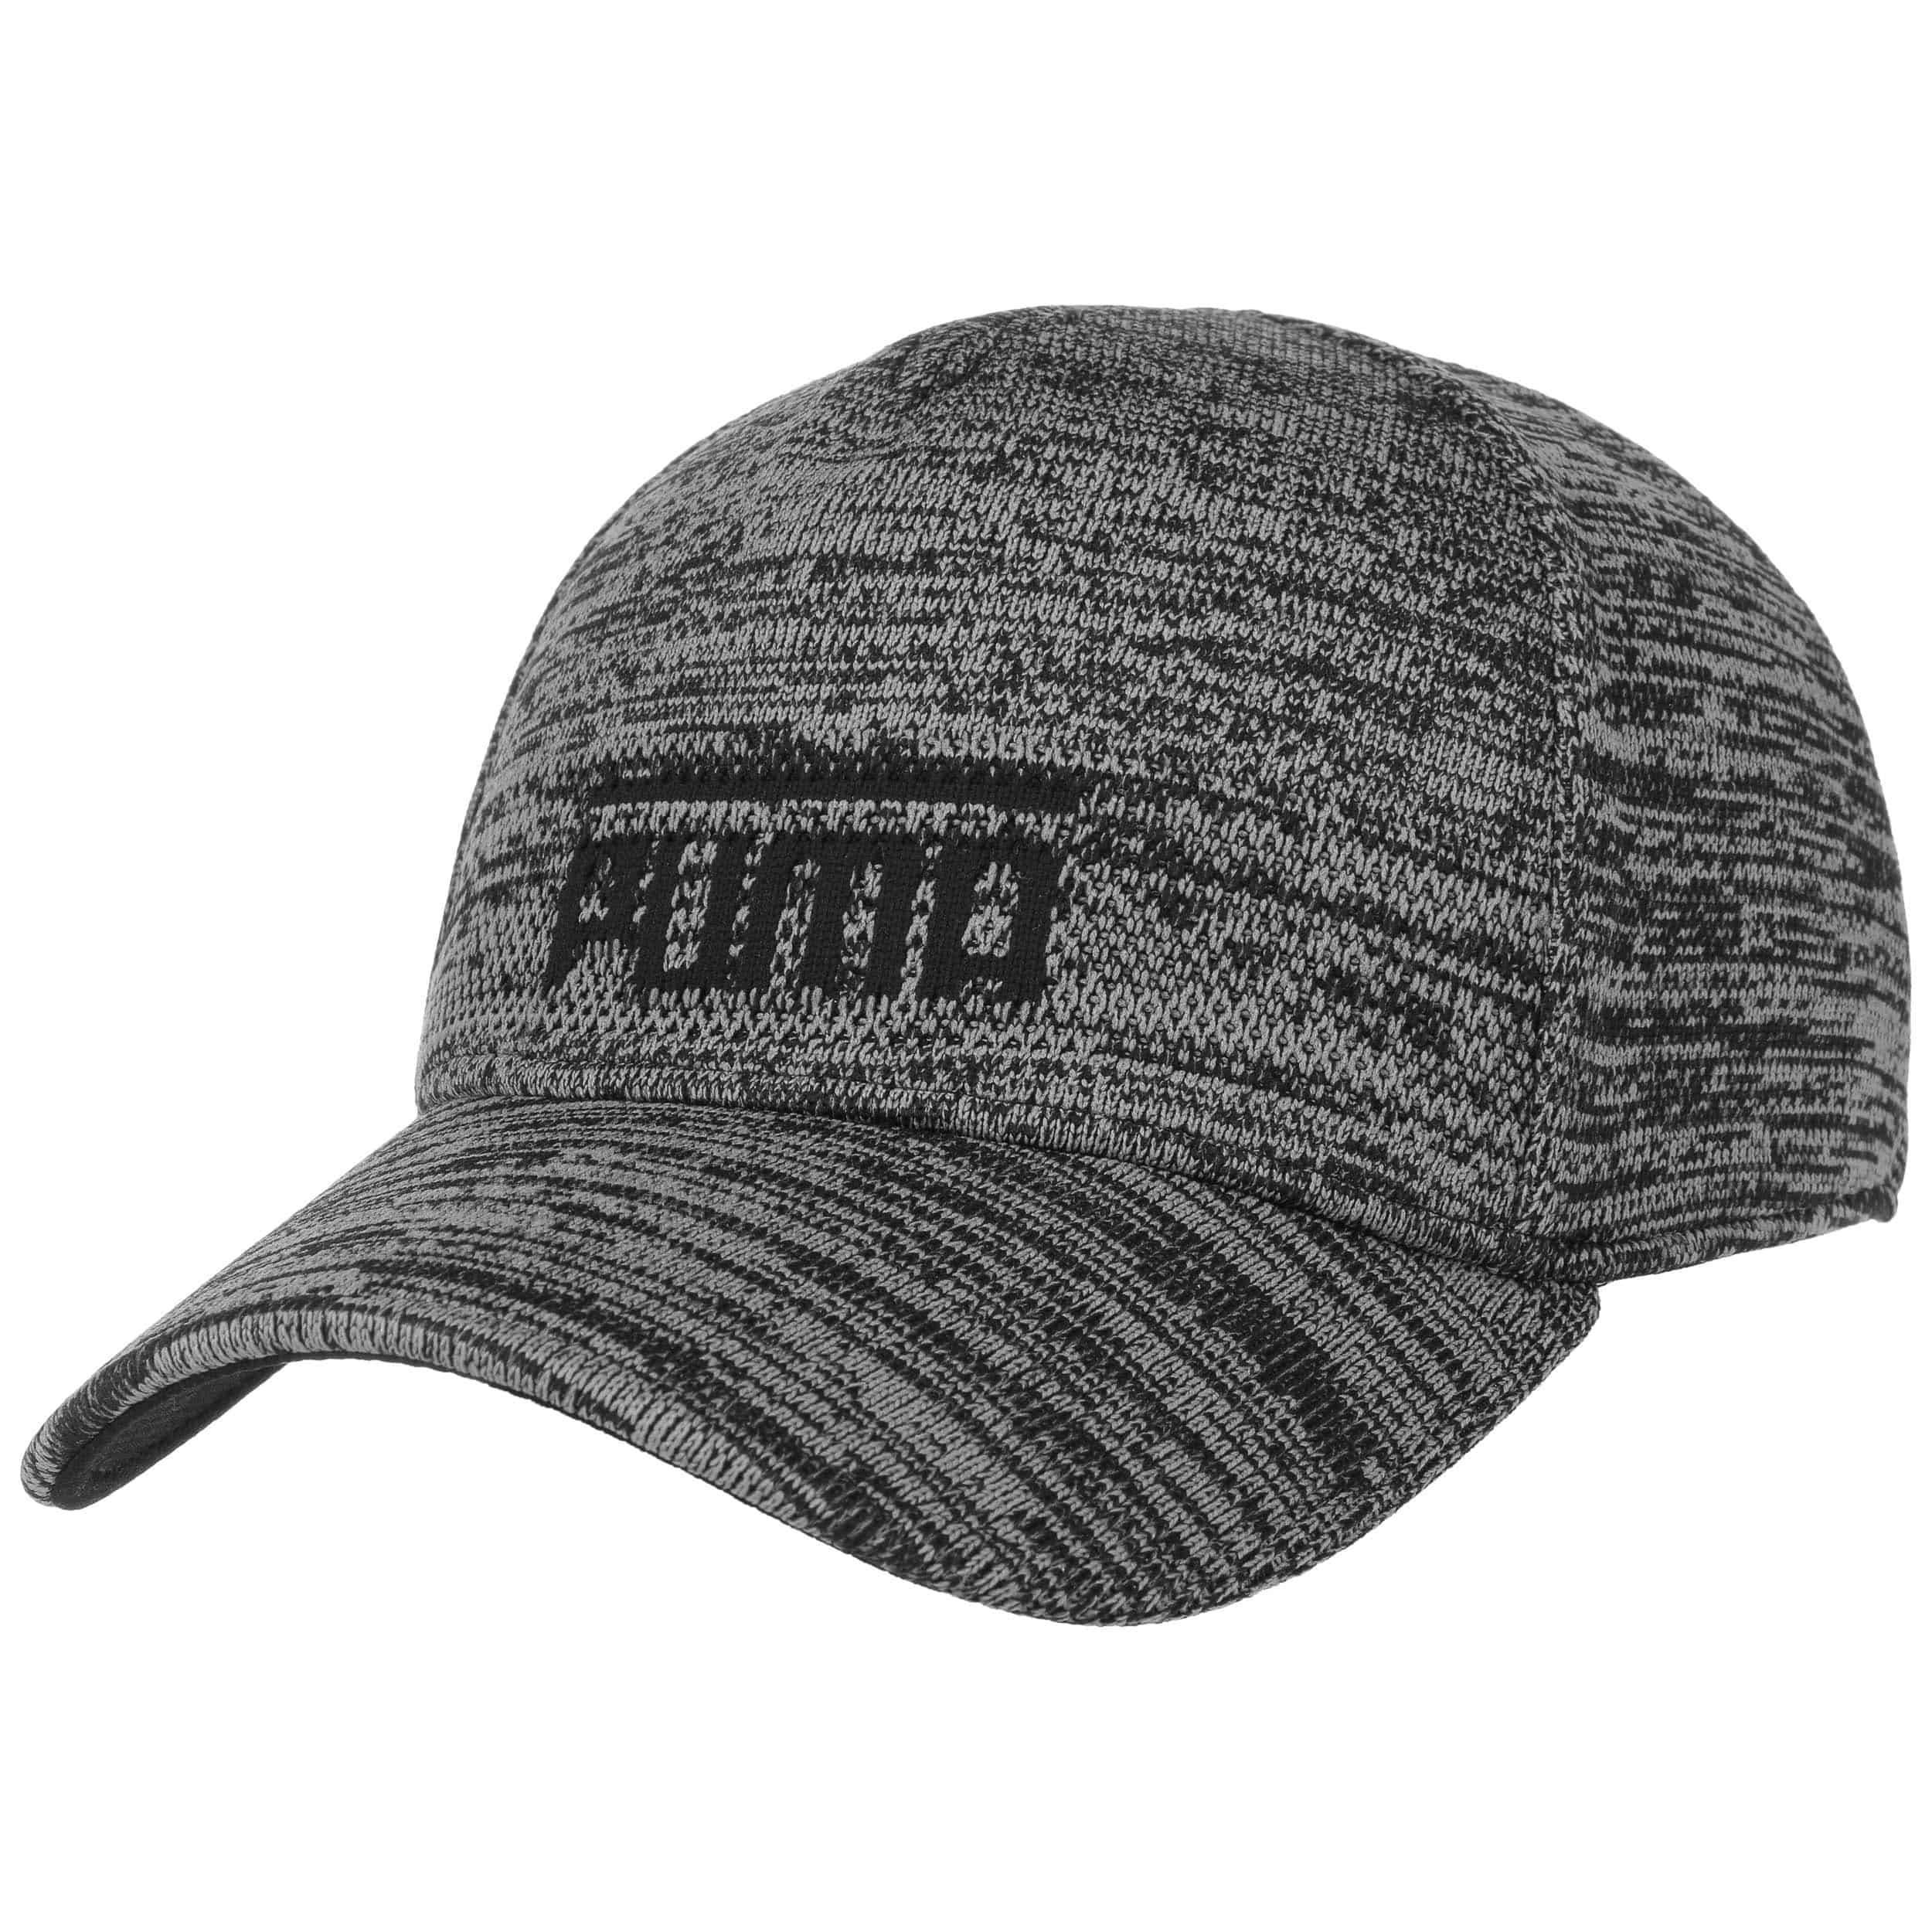 detailed pictures 73ec8 48132 ... closeout pace cap by puma black 5 0ef9f a983f